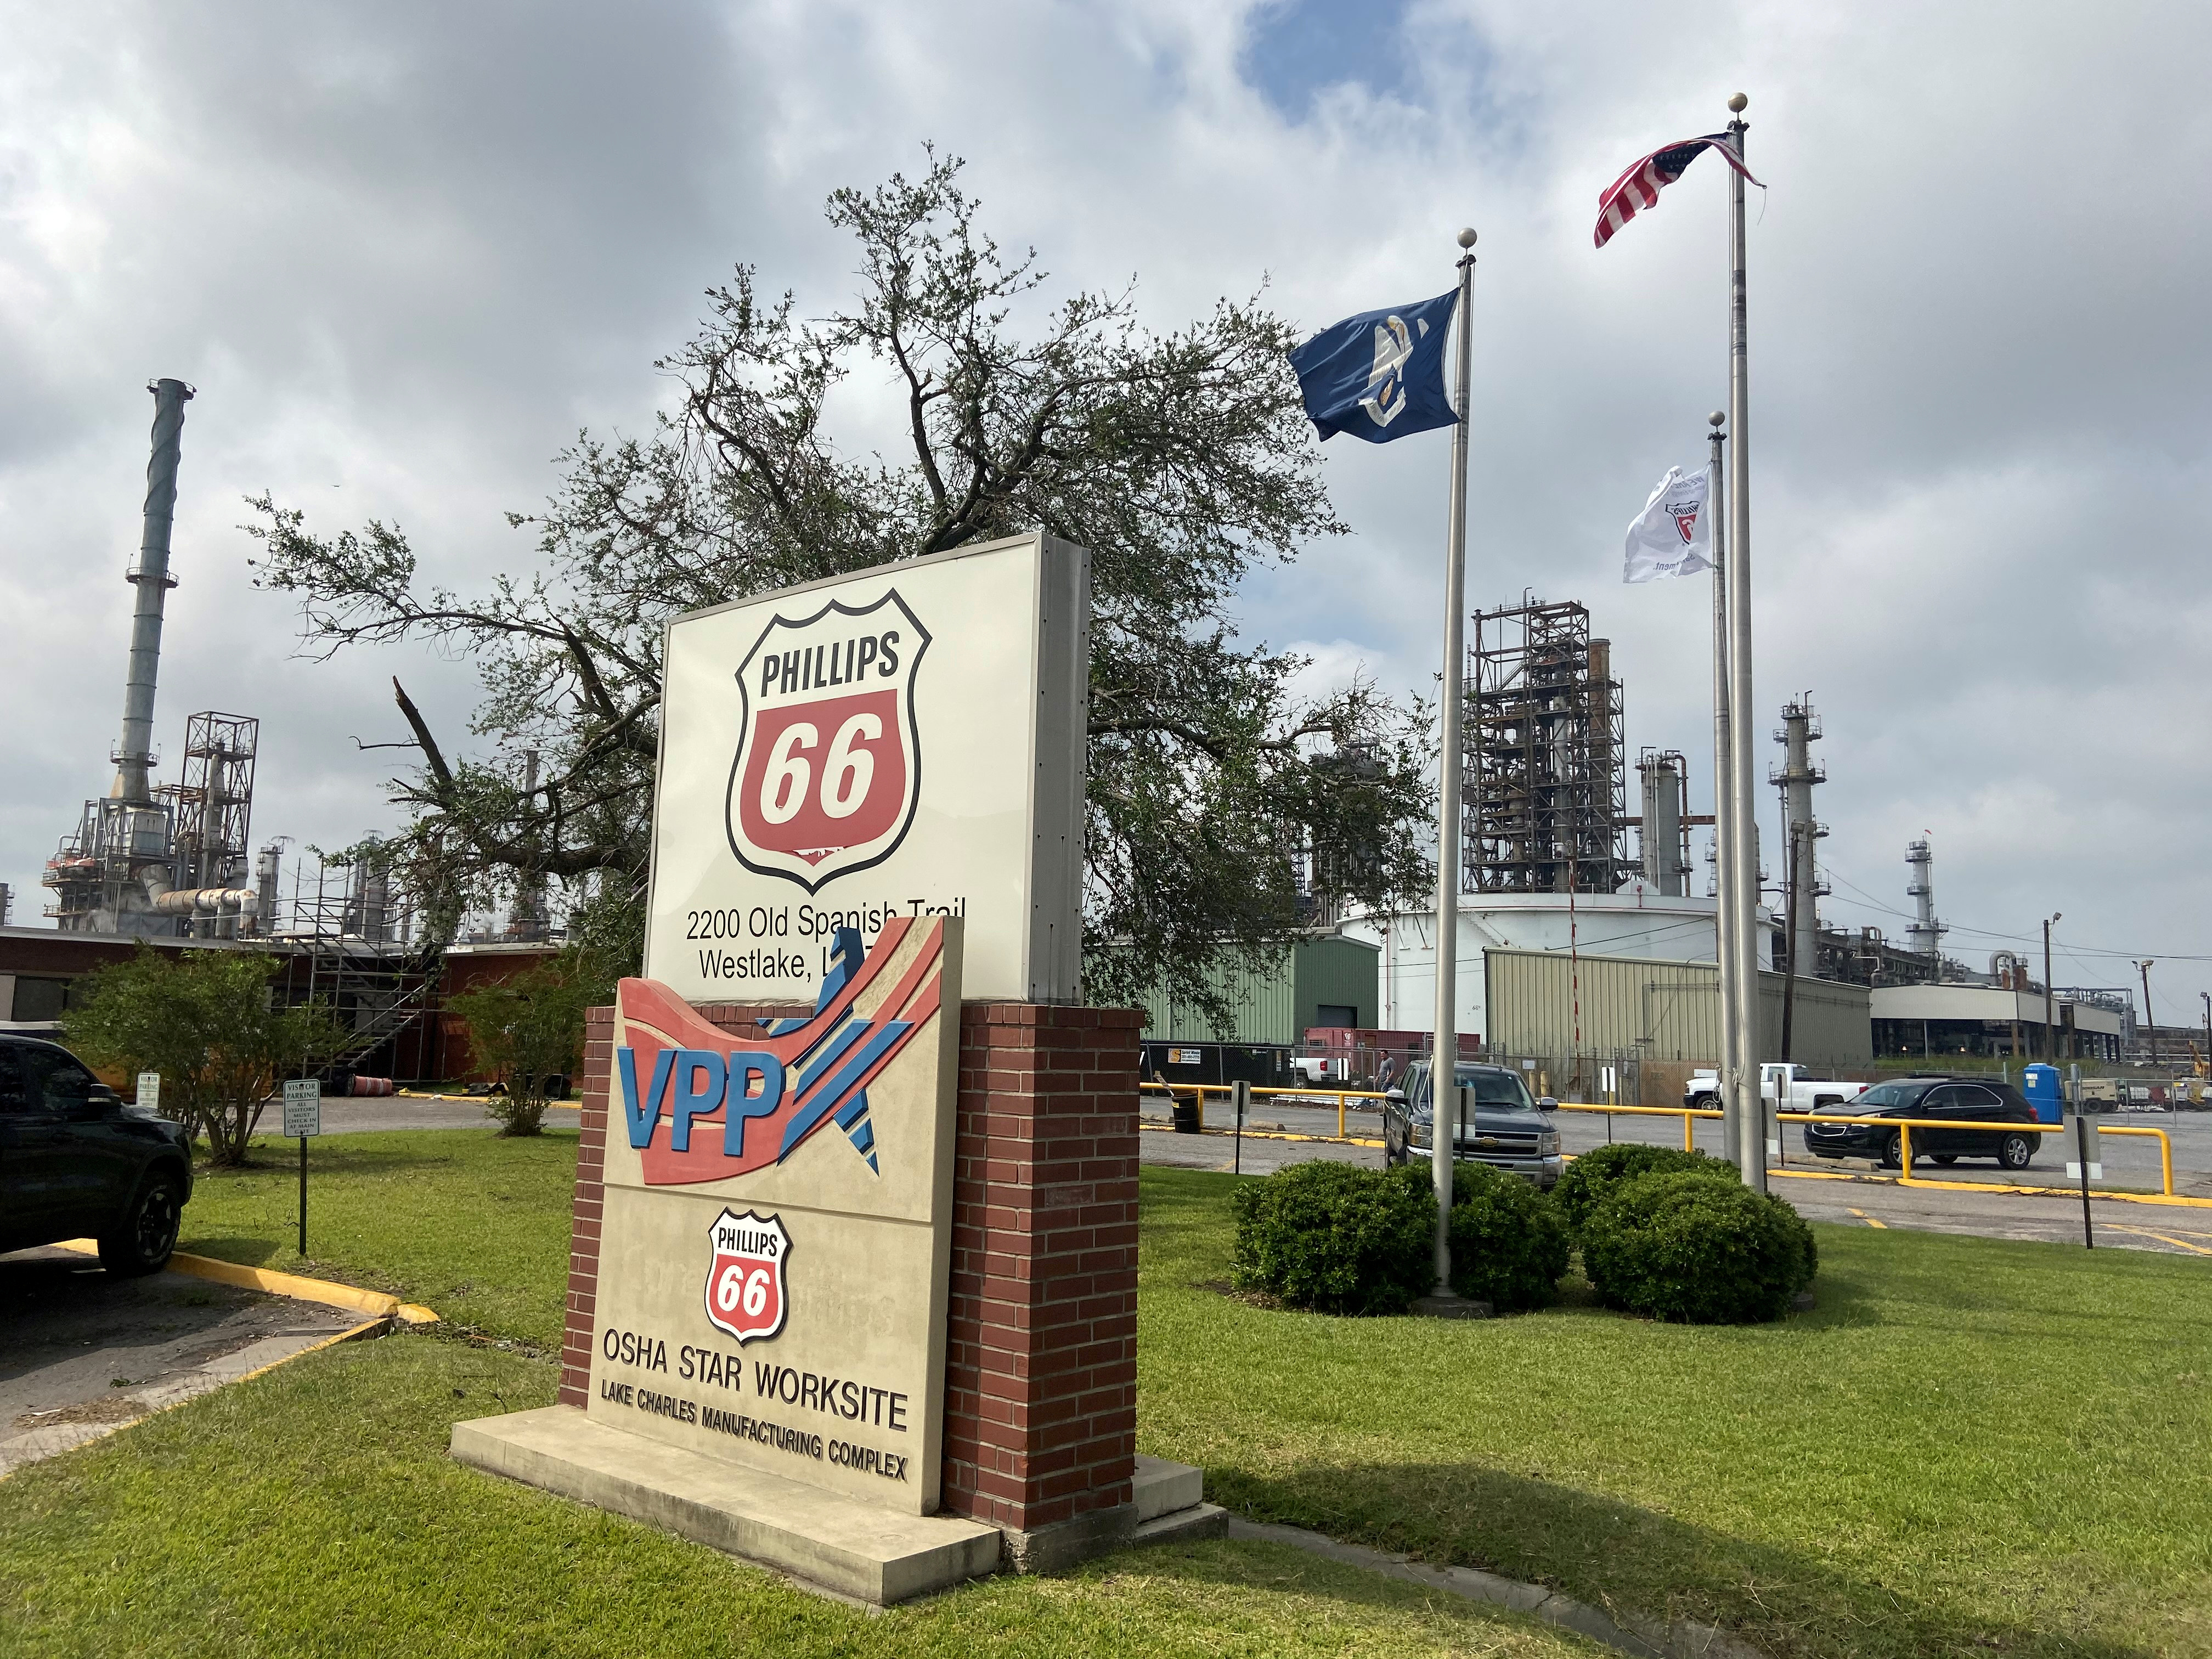 Flags wave in front of the Phillips 66 refinery near Lake Charles, Louisiana, U.S. October 11, 2020. REUTERS/Stephanie Kelly